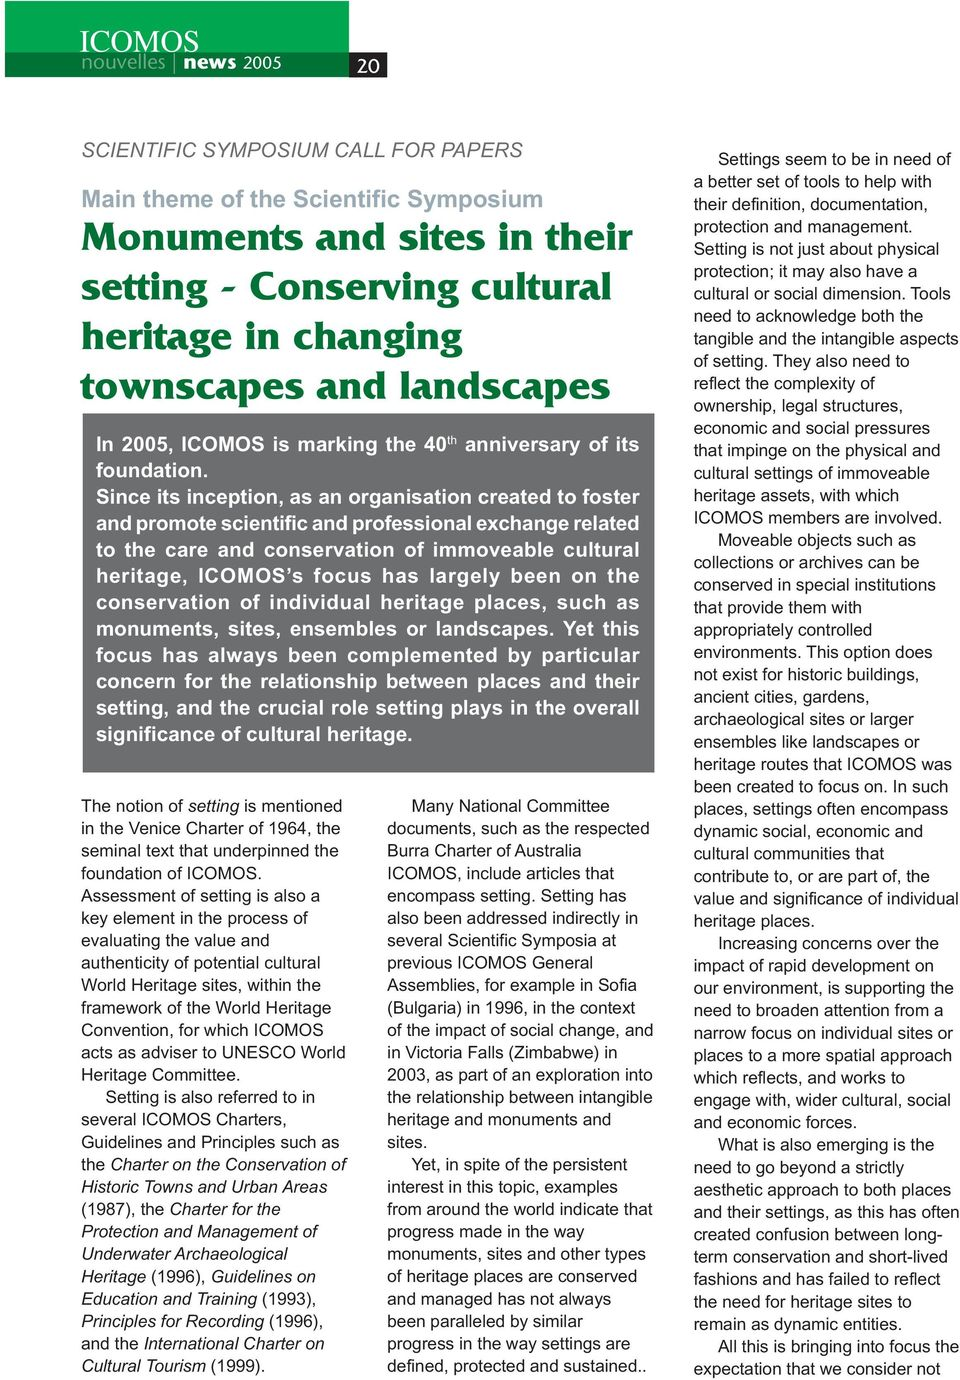 Since its inception, as an organisation created to foster and promote scientific and professional exchange related to the care and conservation of immoveable cultural heritage, ICOMOS s focus has